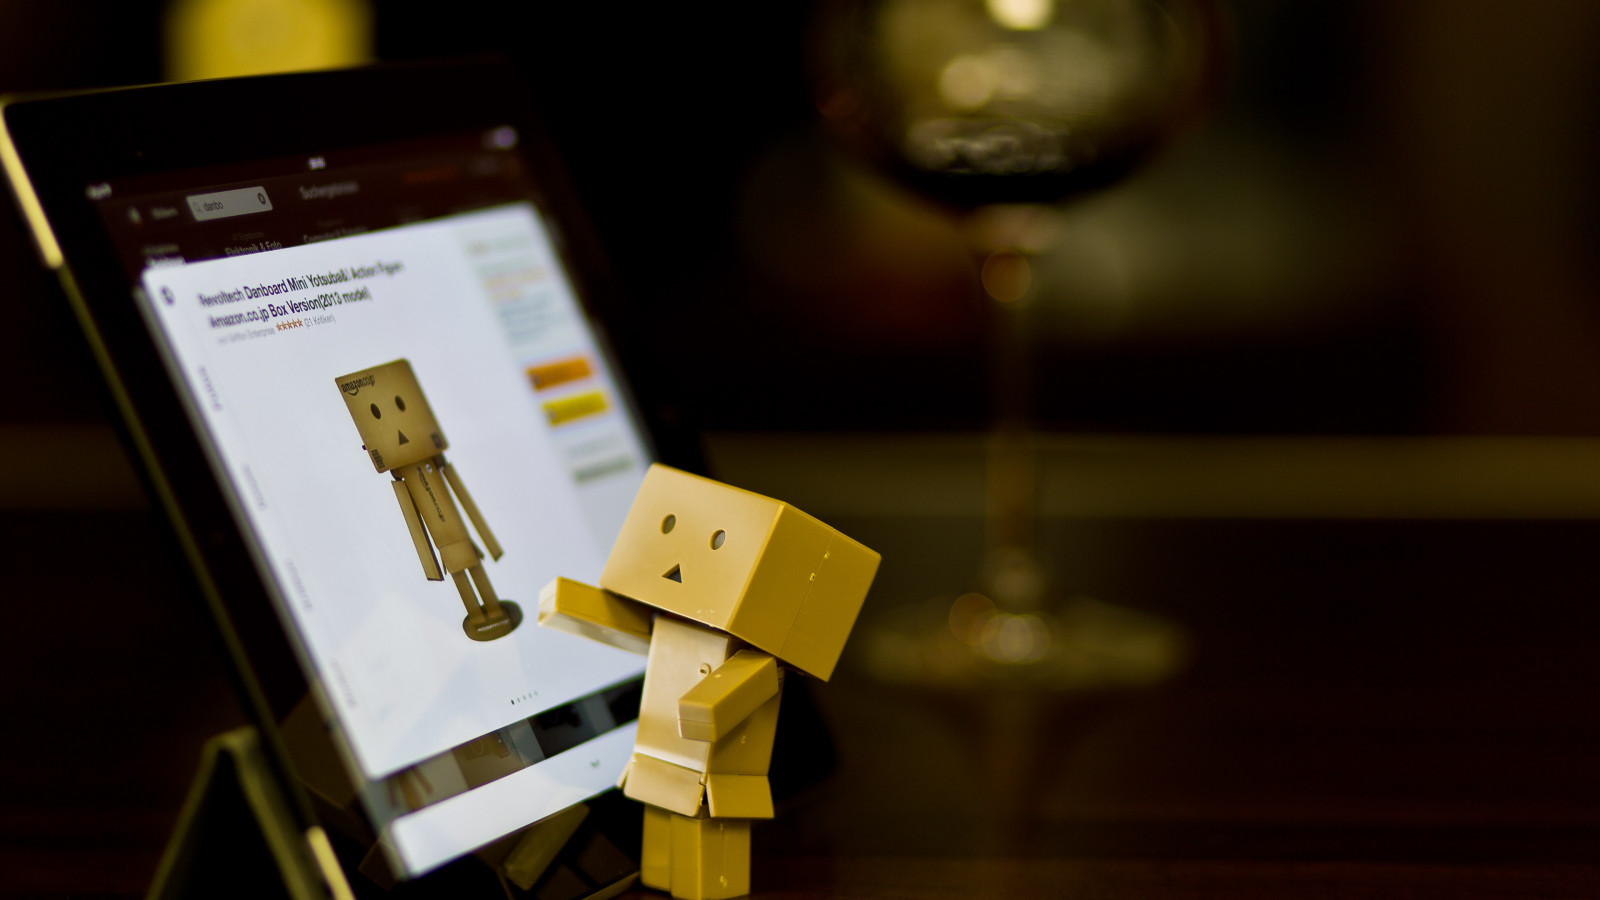 Danbo with tablet | 1600x900 wallpaper